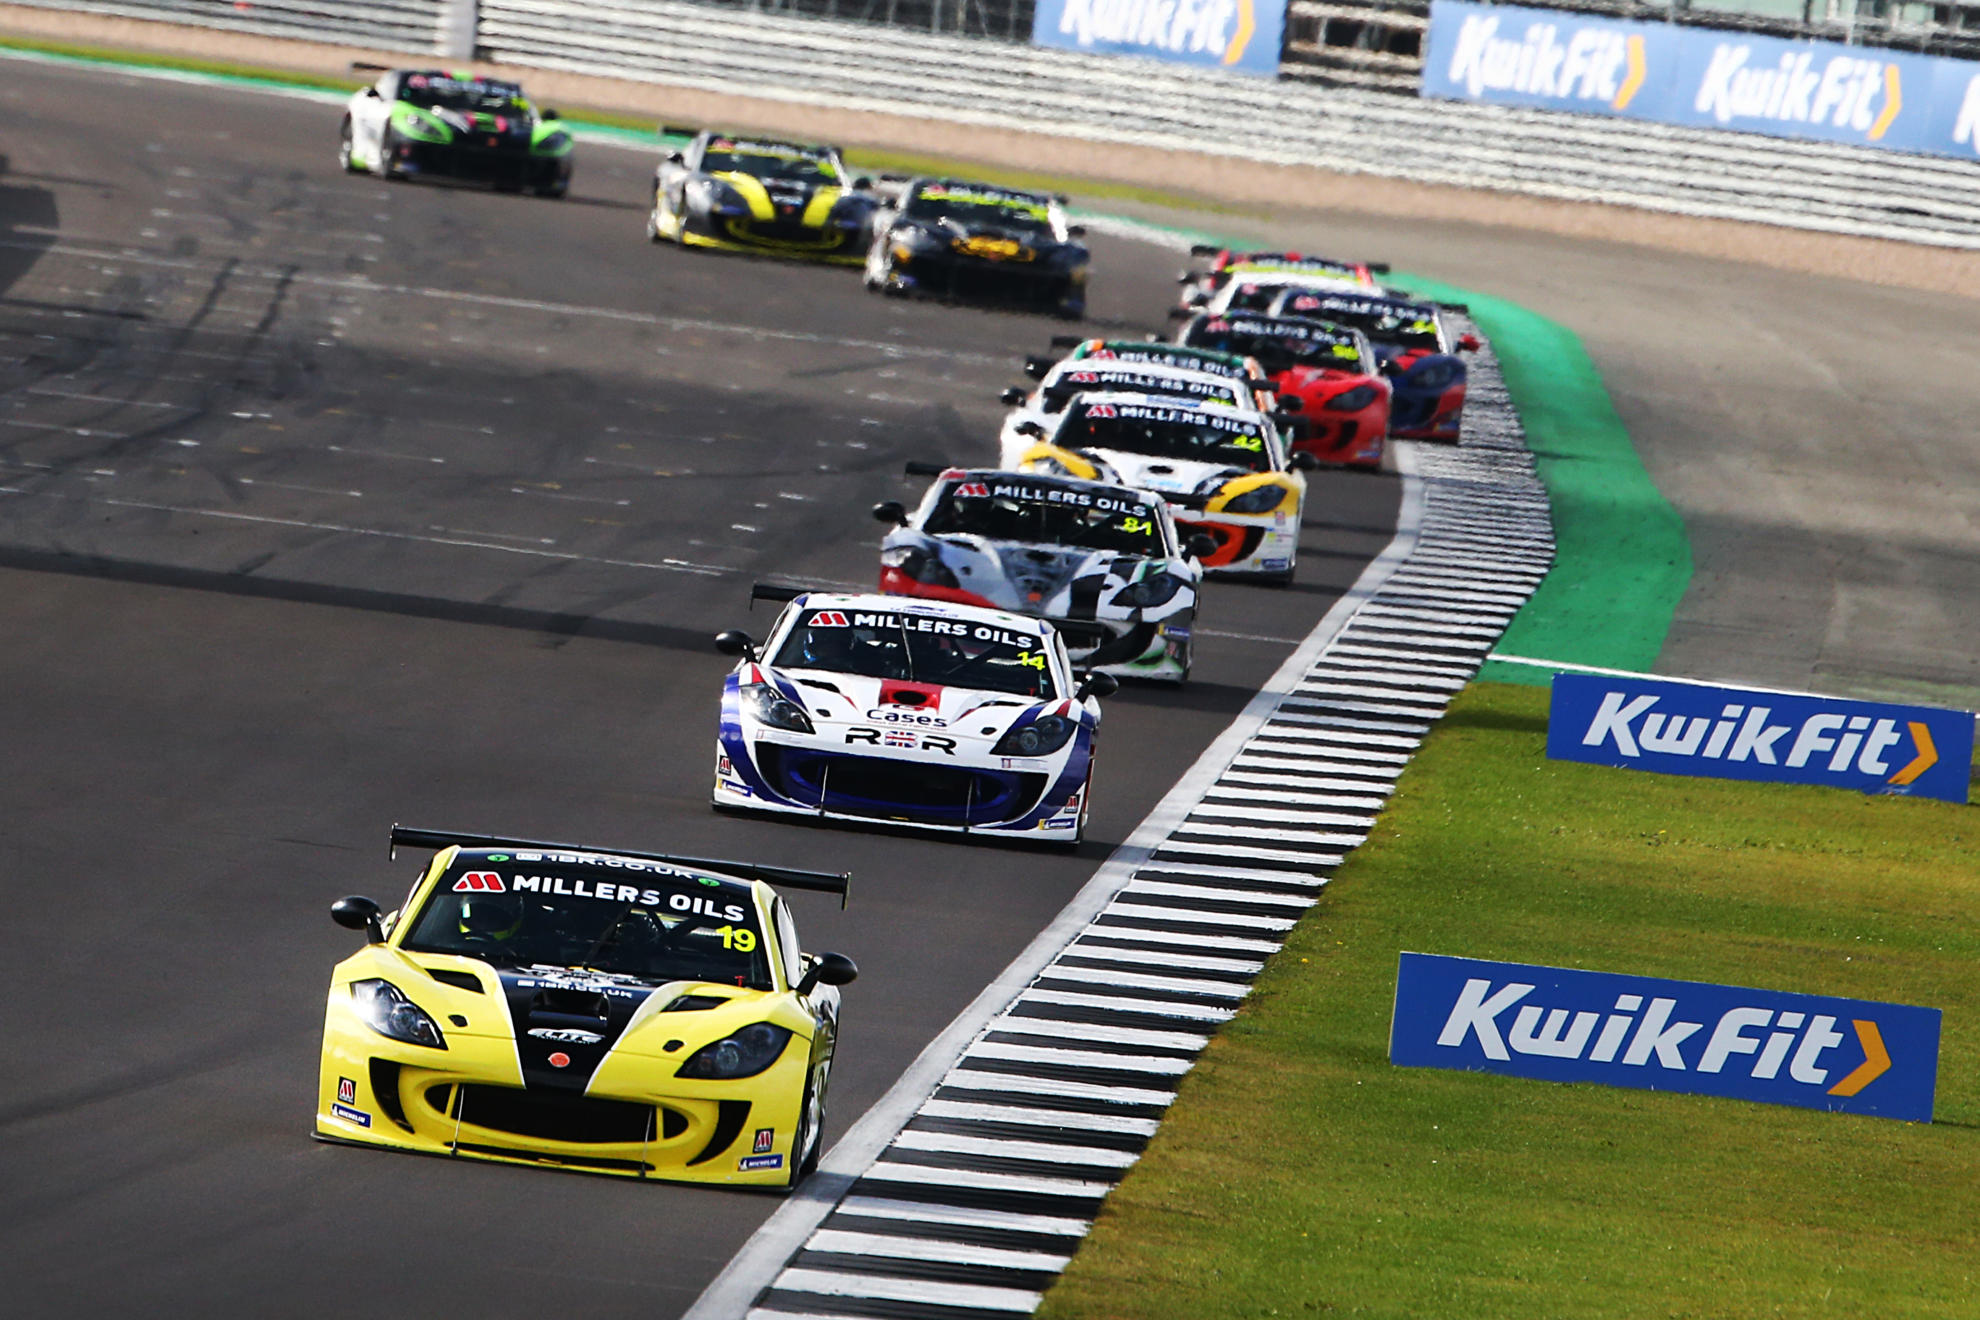 Harry King Takes Championship Lead With Silverstone Double